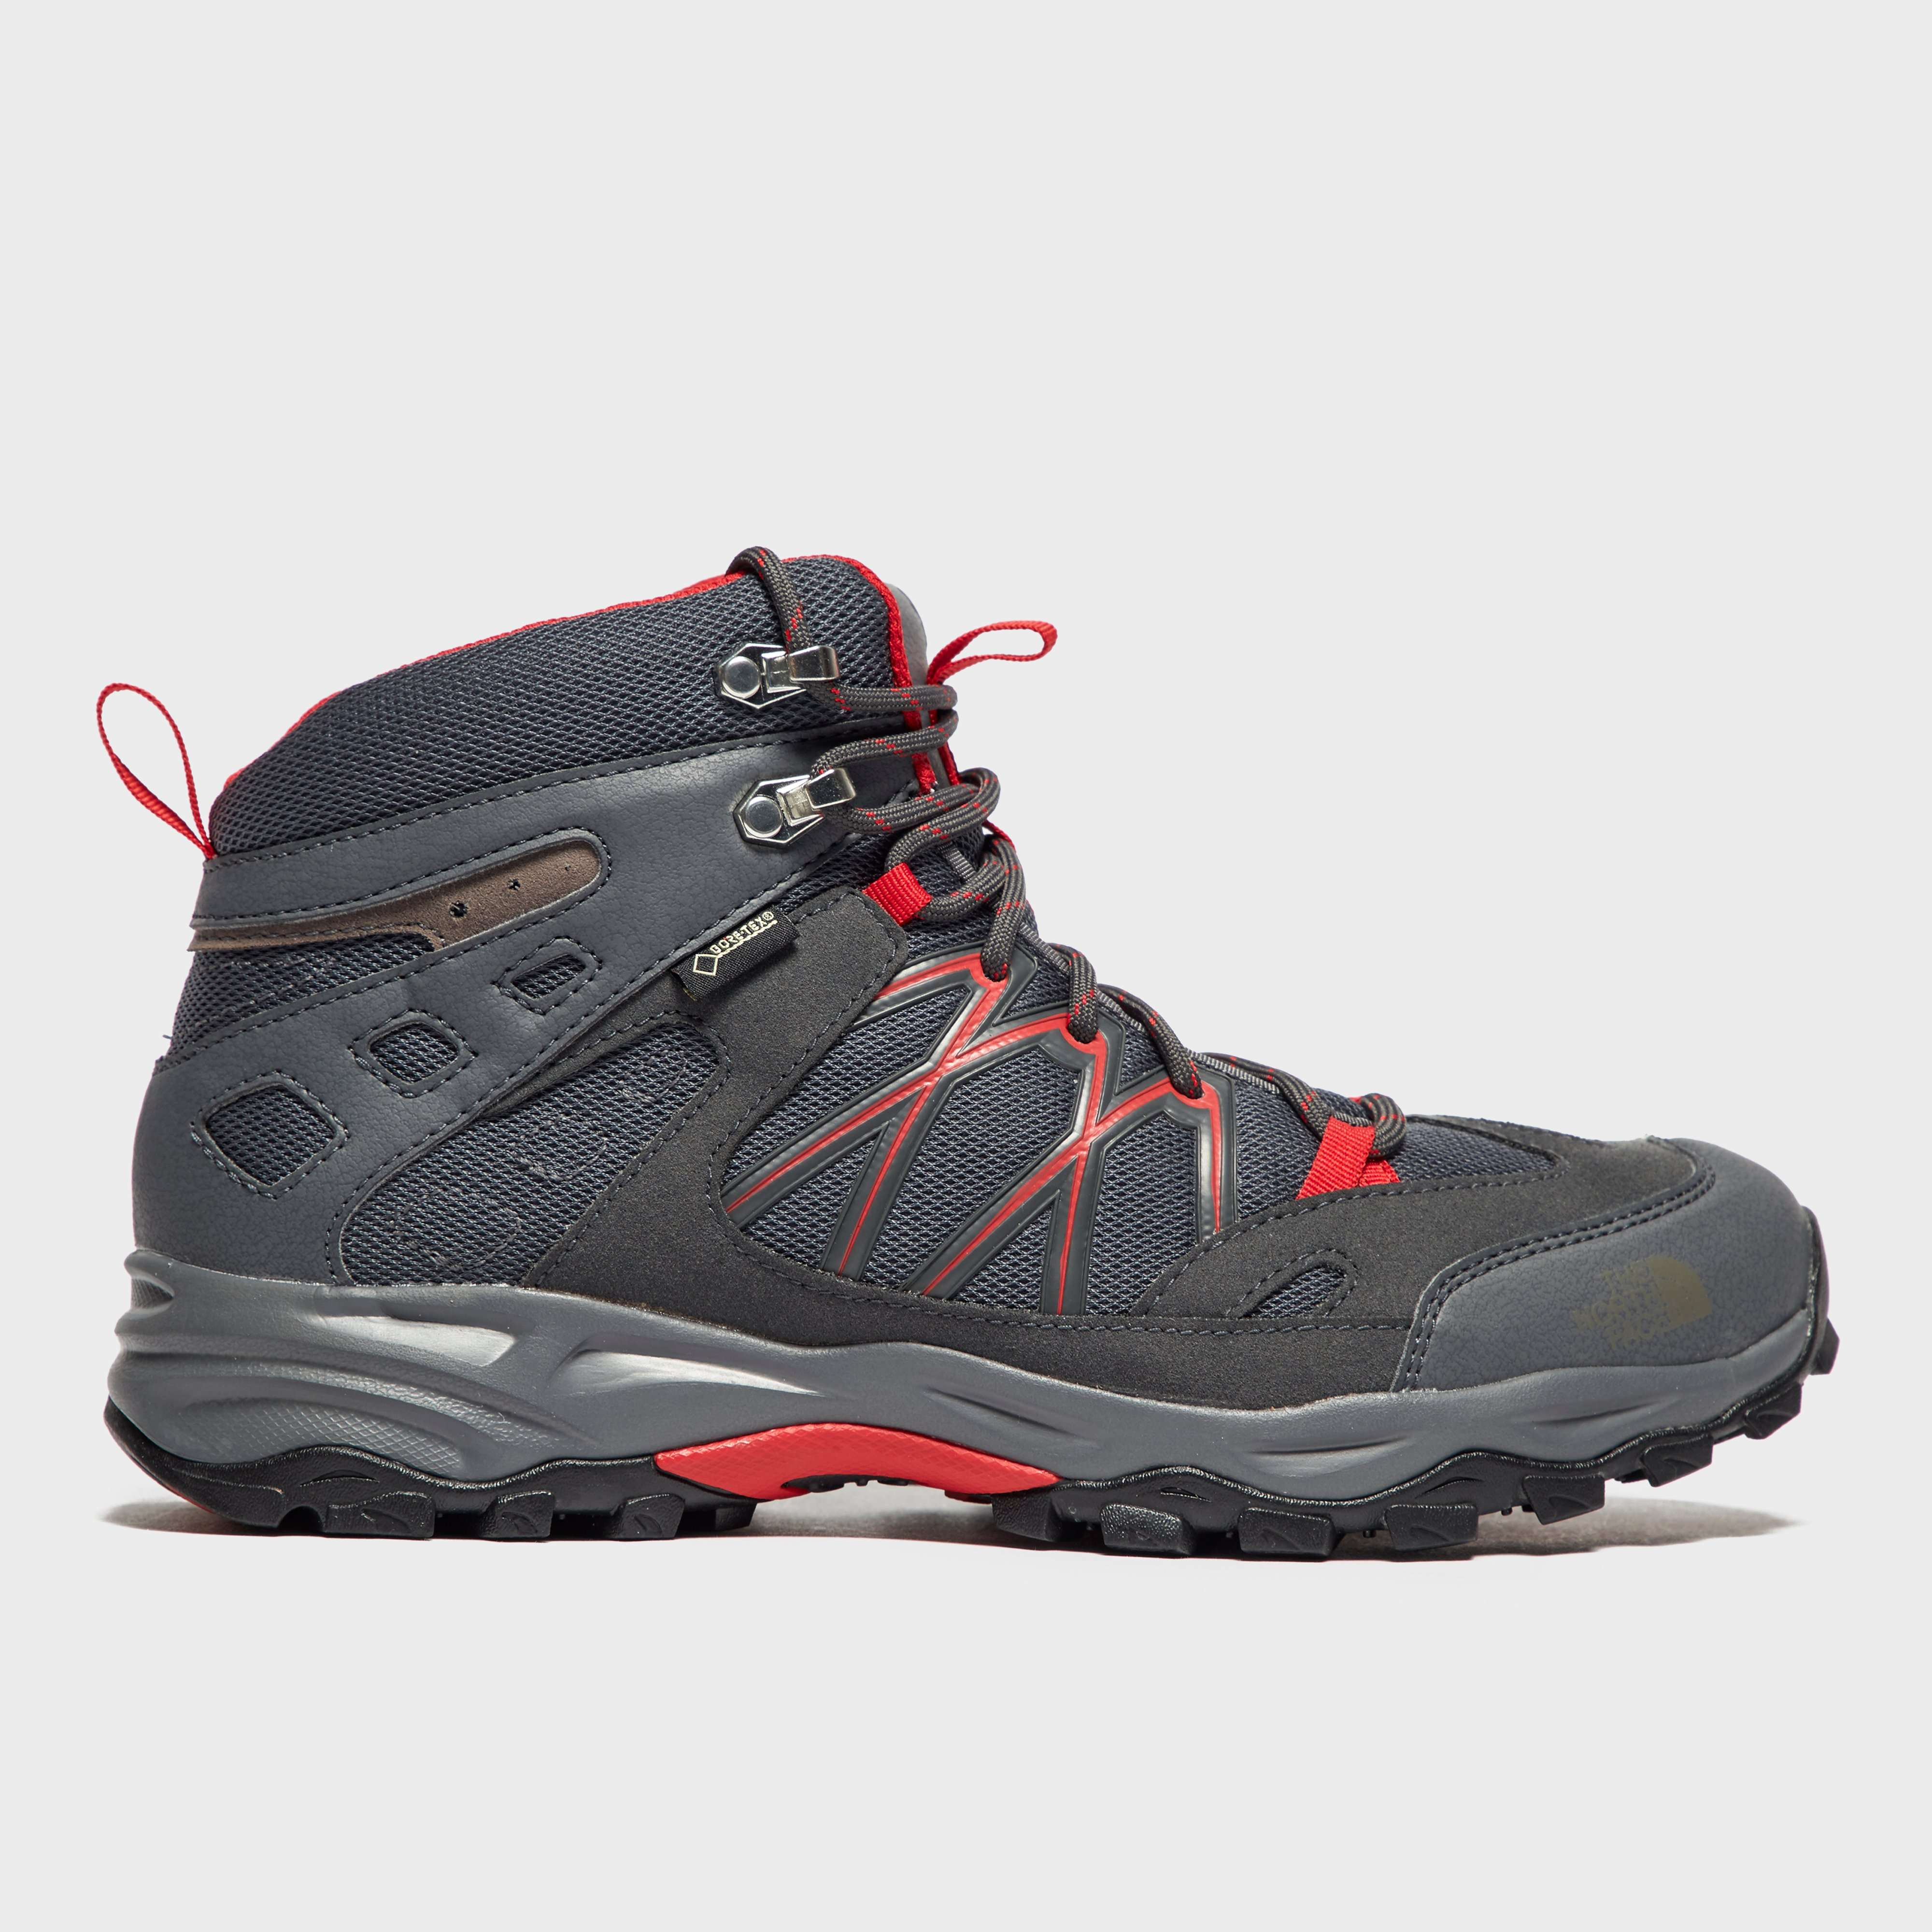 THE NORTH FACE Men's Terra Mid GORE-TEX® Walking Boot